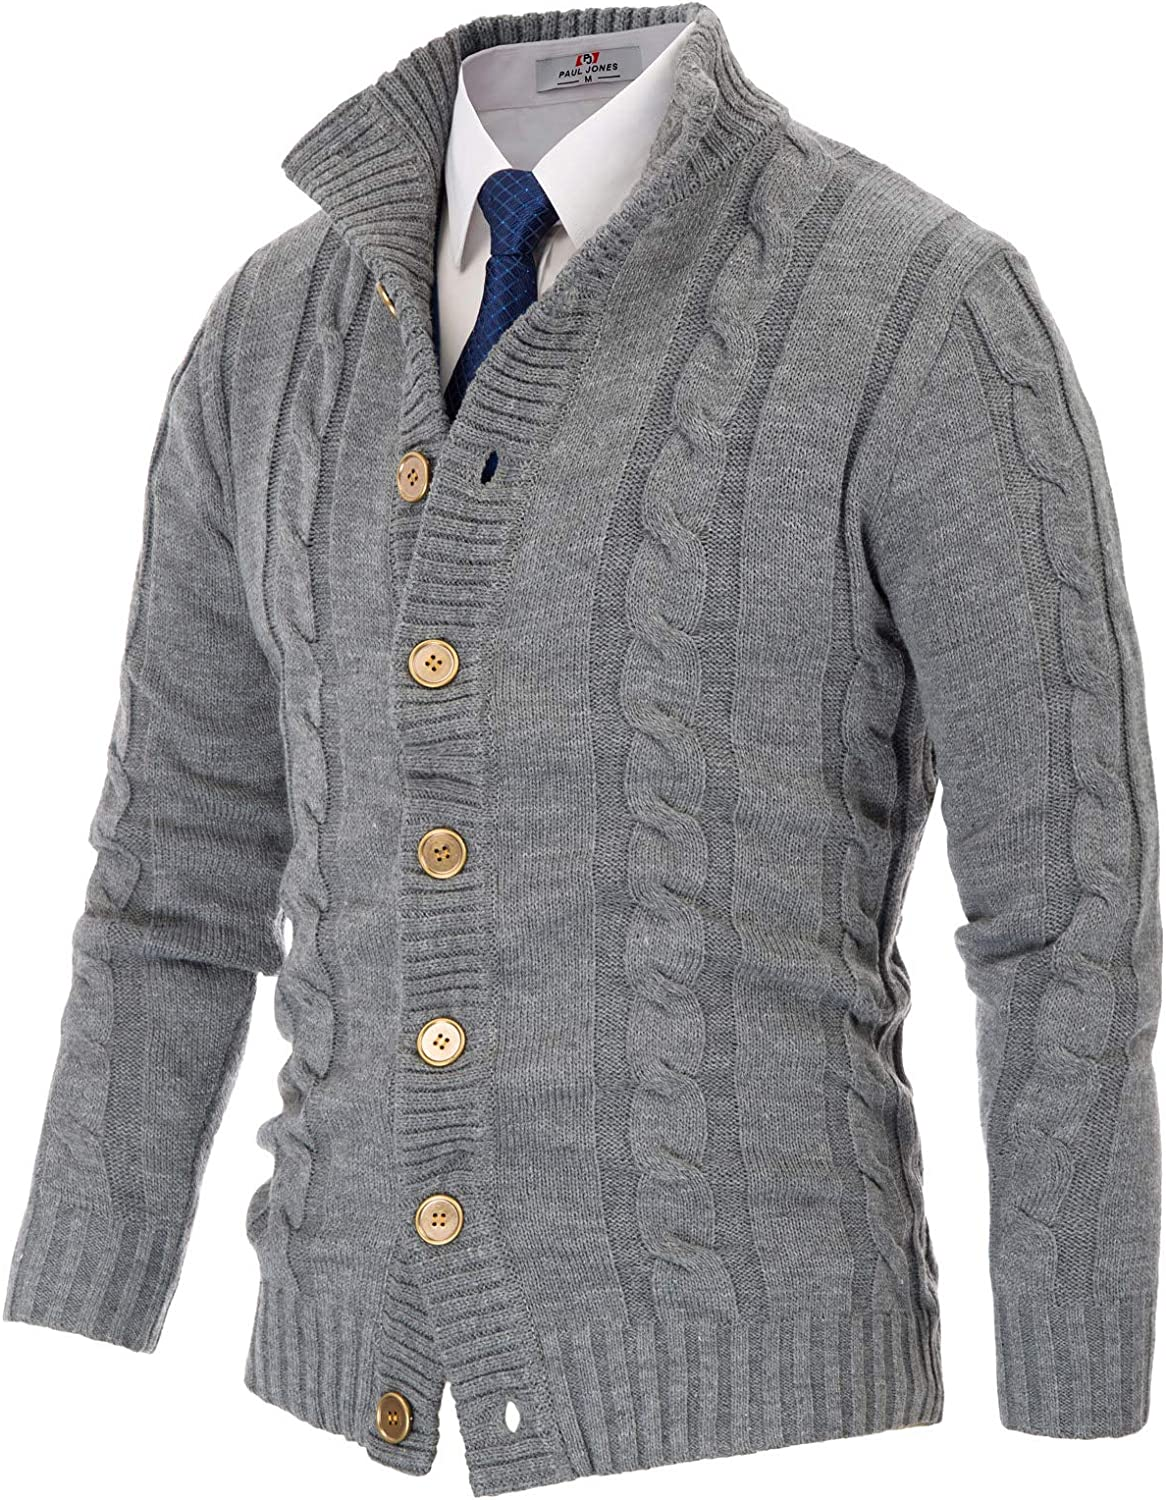 Mens Casual Stand Collar Cardigan Button Down Cable Knitted Sweater